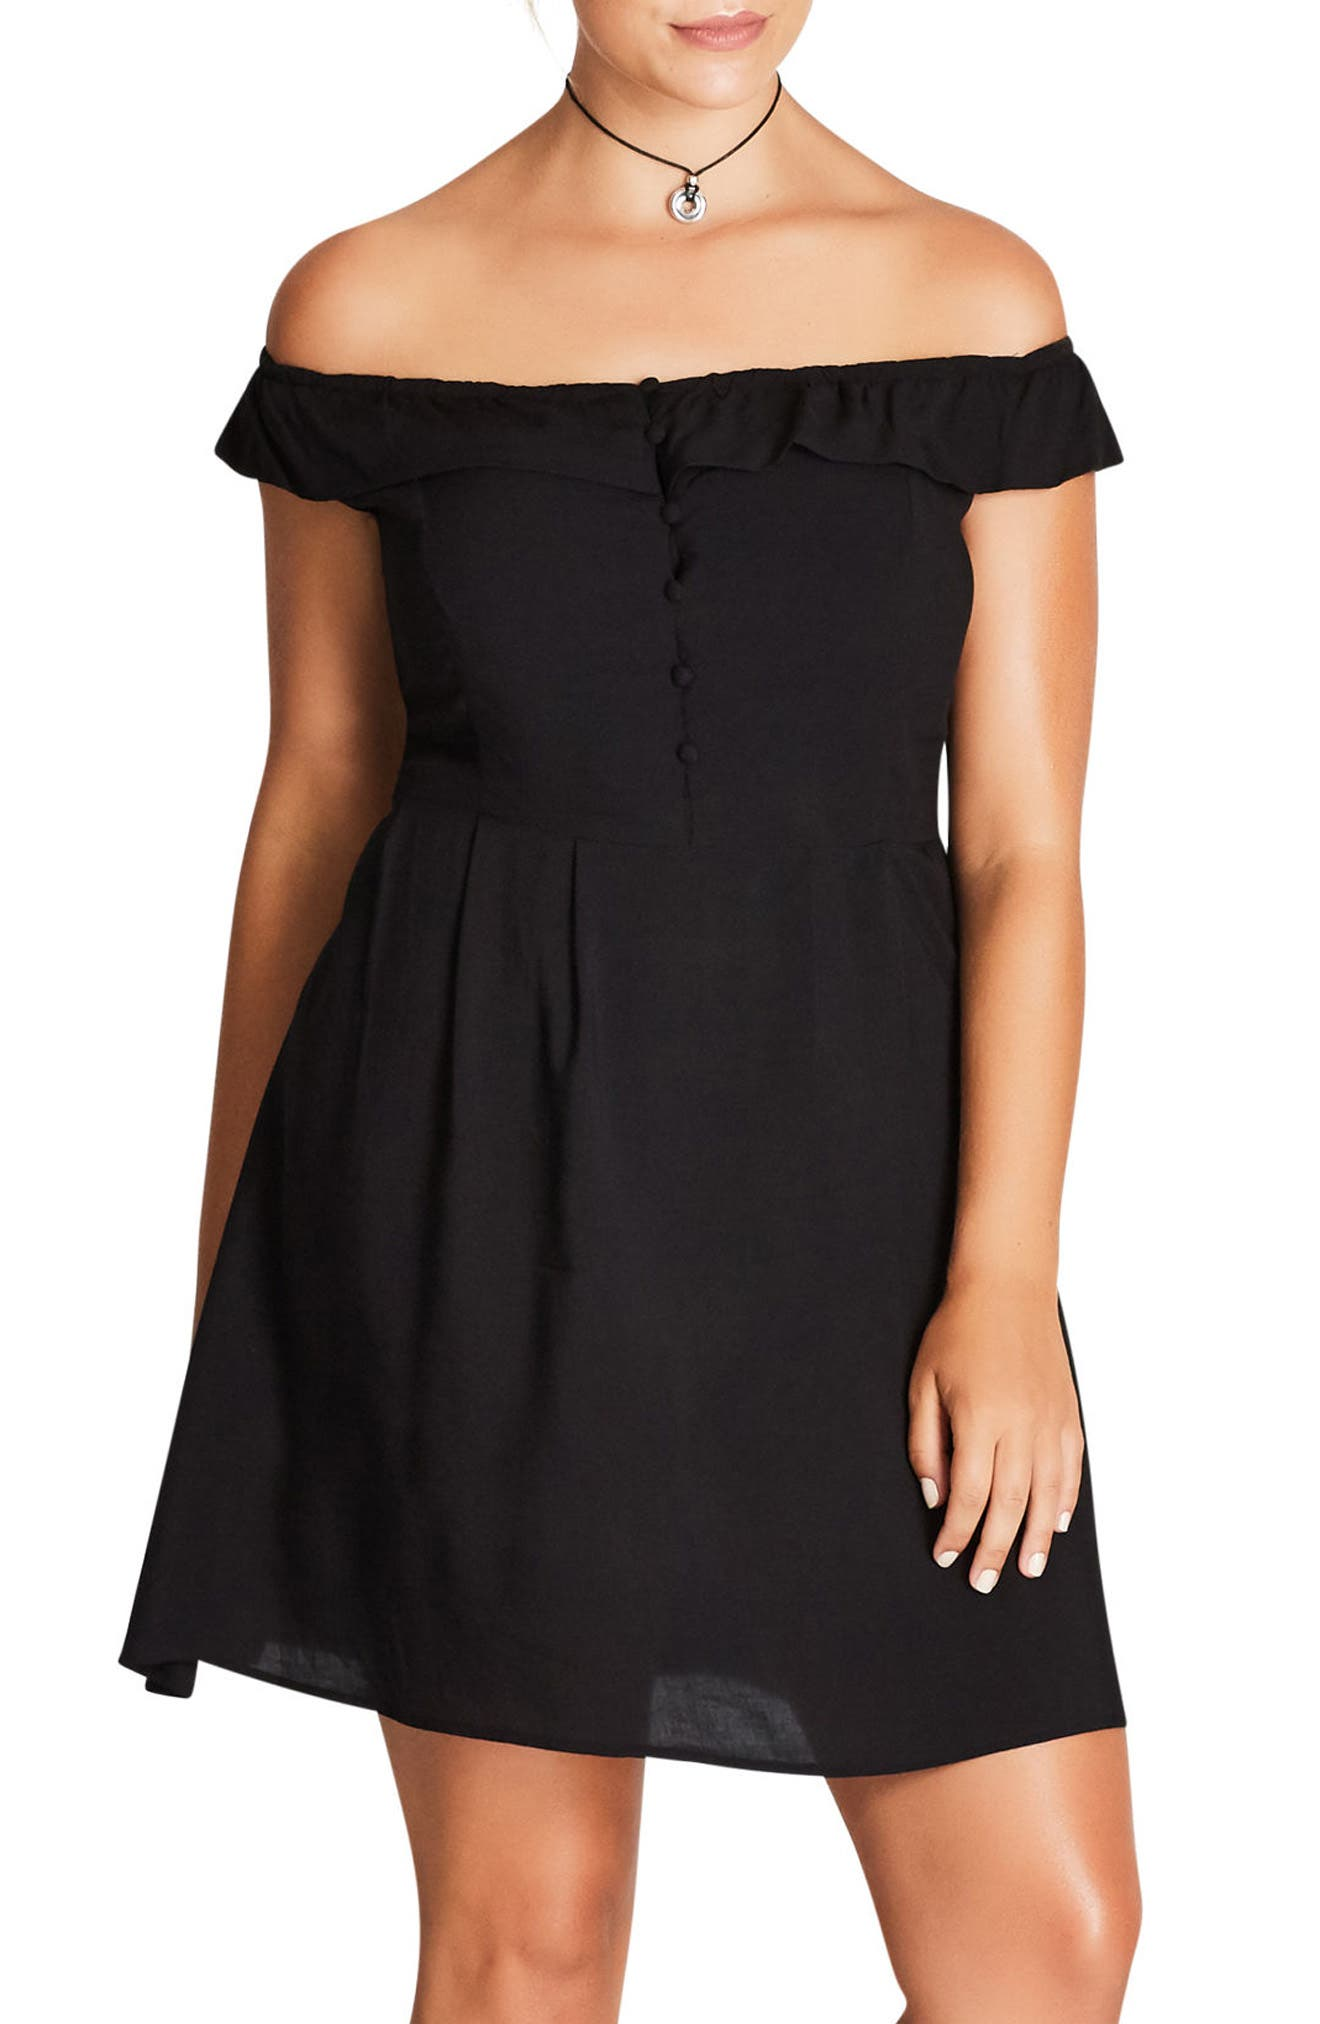 Alternate Image 1 Selected - City Chic Pretty Button Fit & Flare Dress (Plus Size)